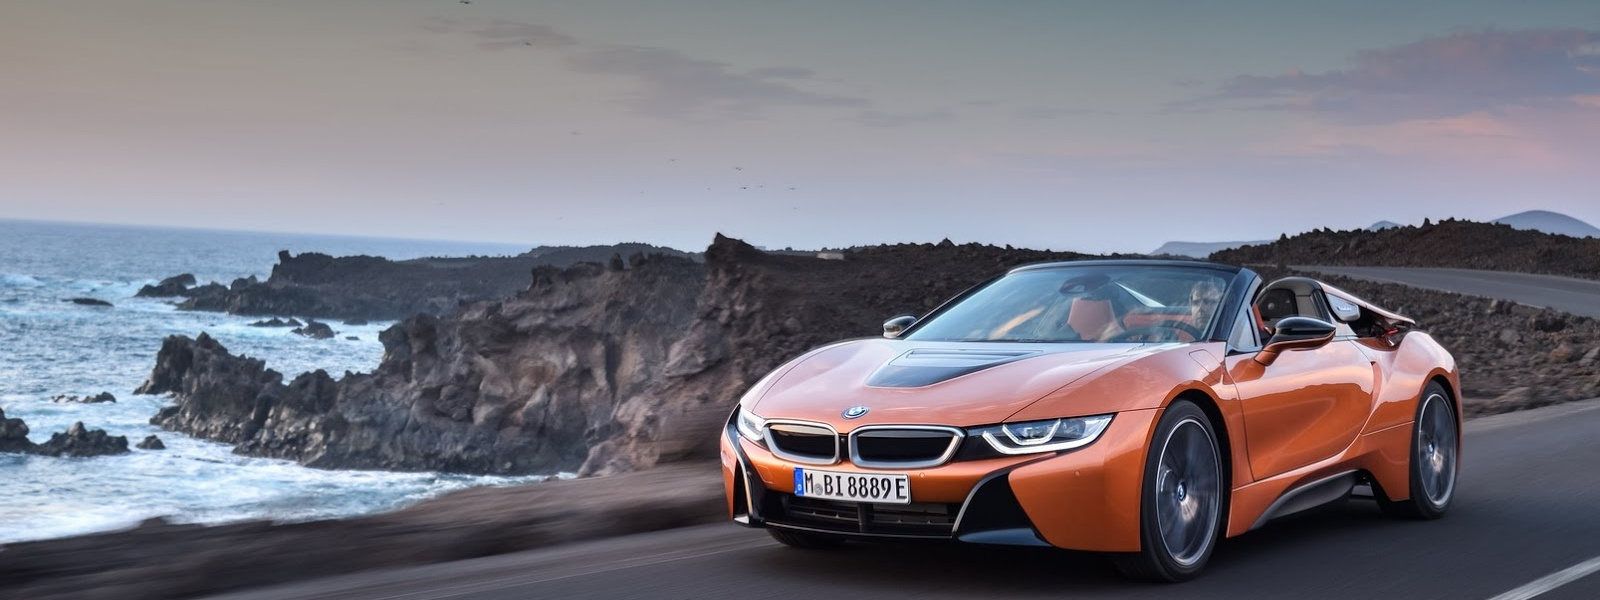 2019-BMW-i8-Roadster-Coupe-33.jpg